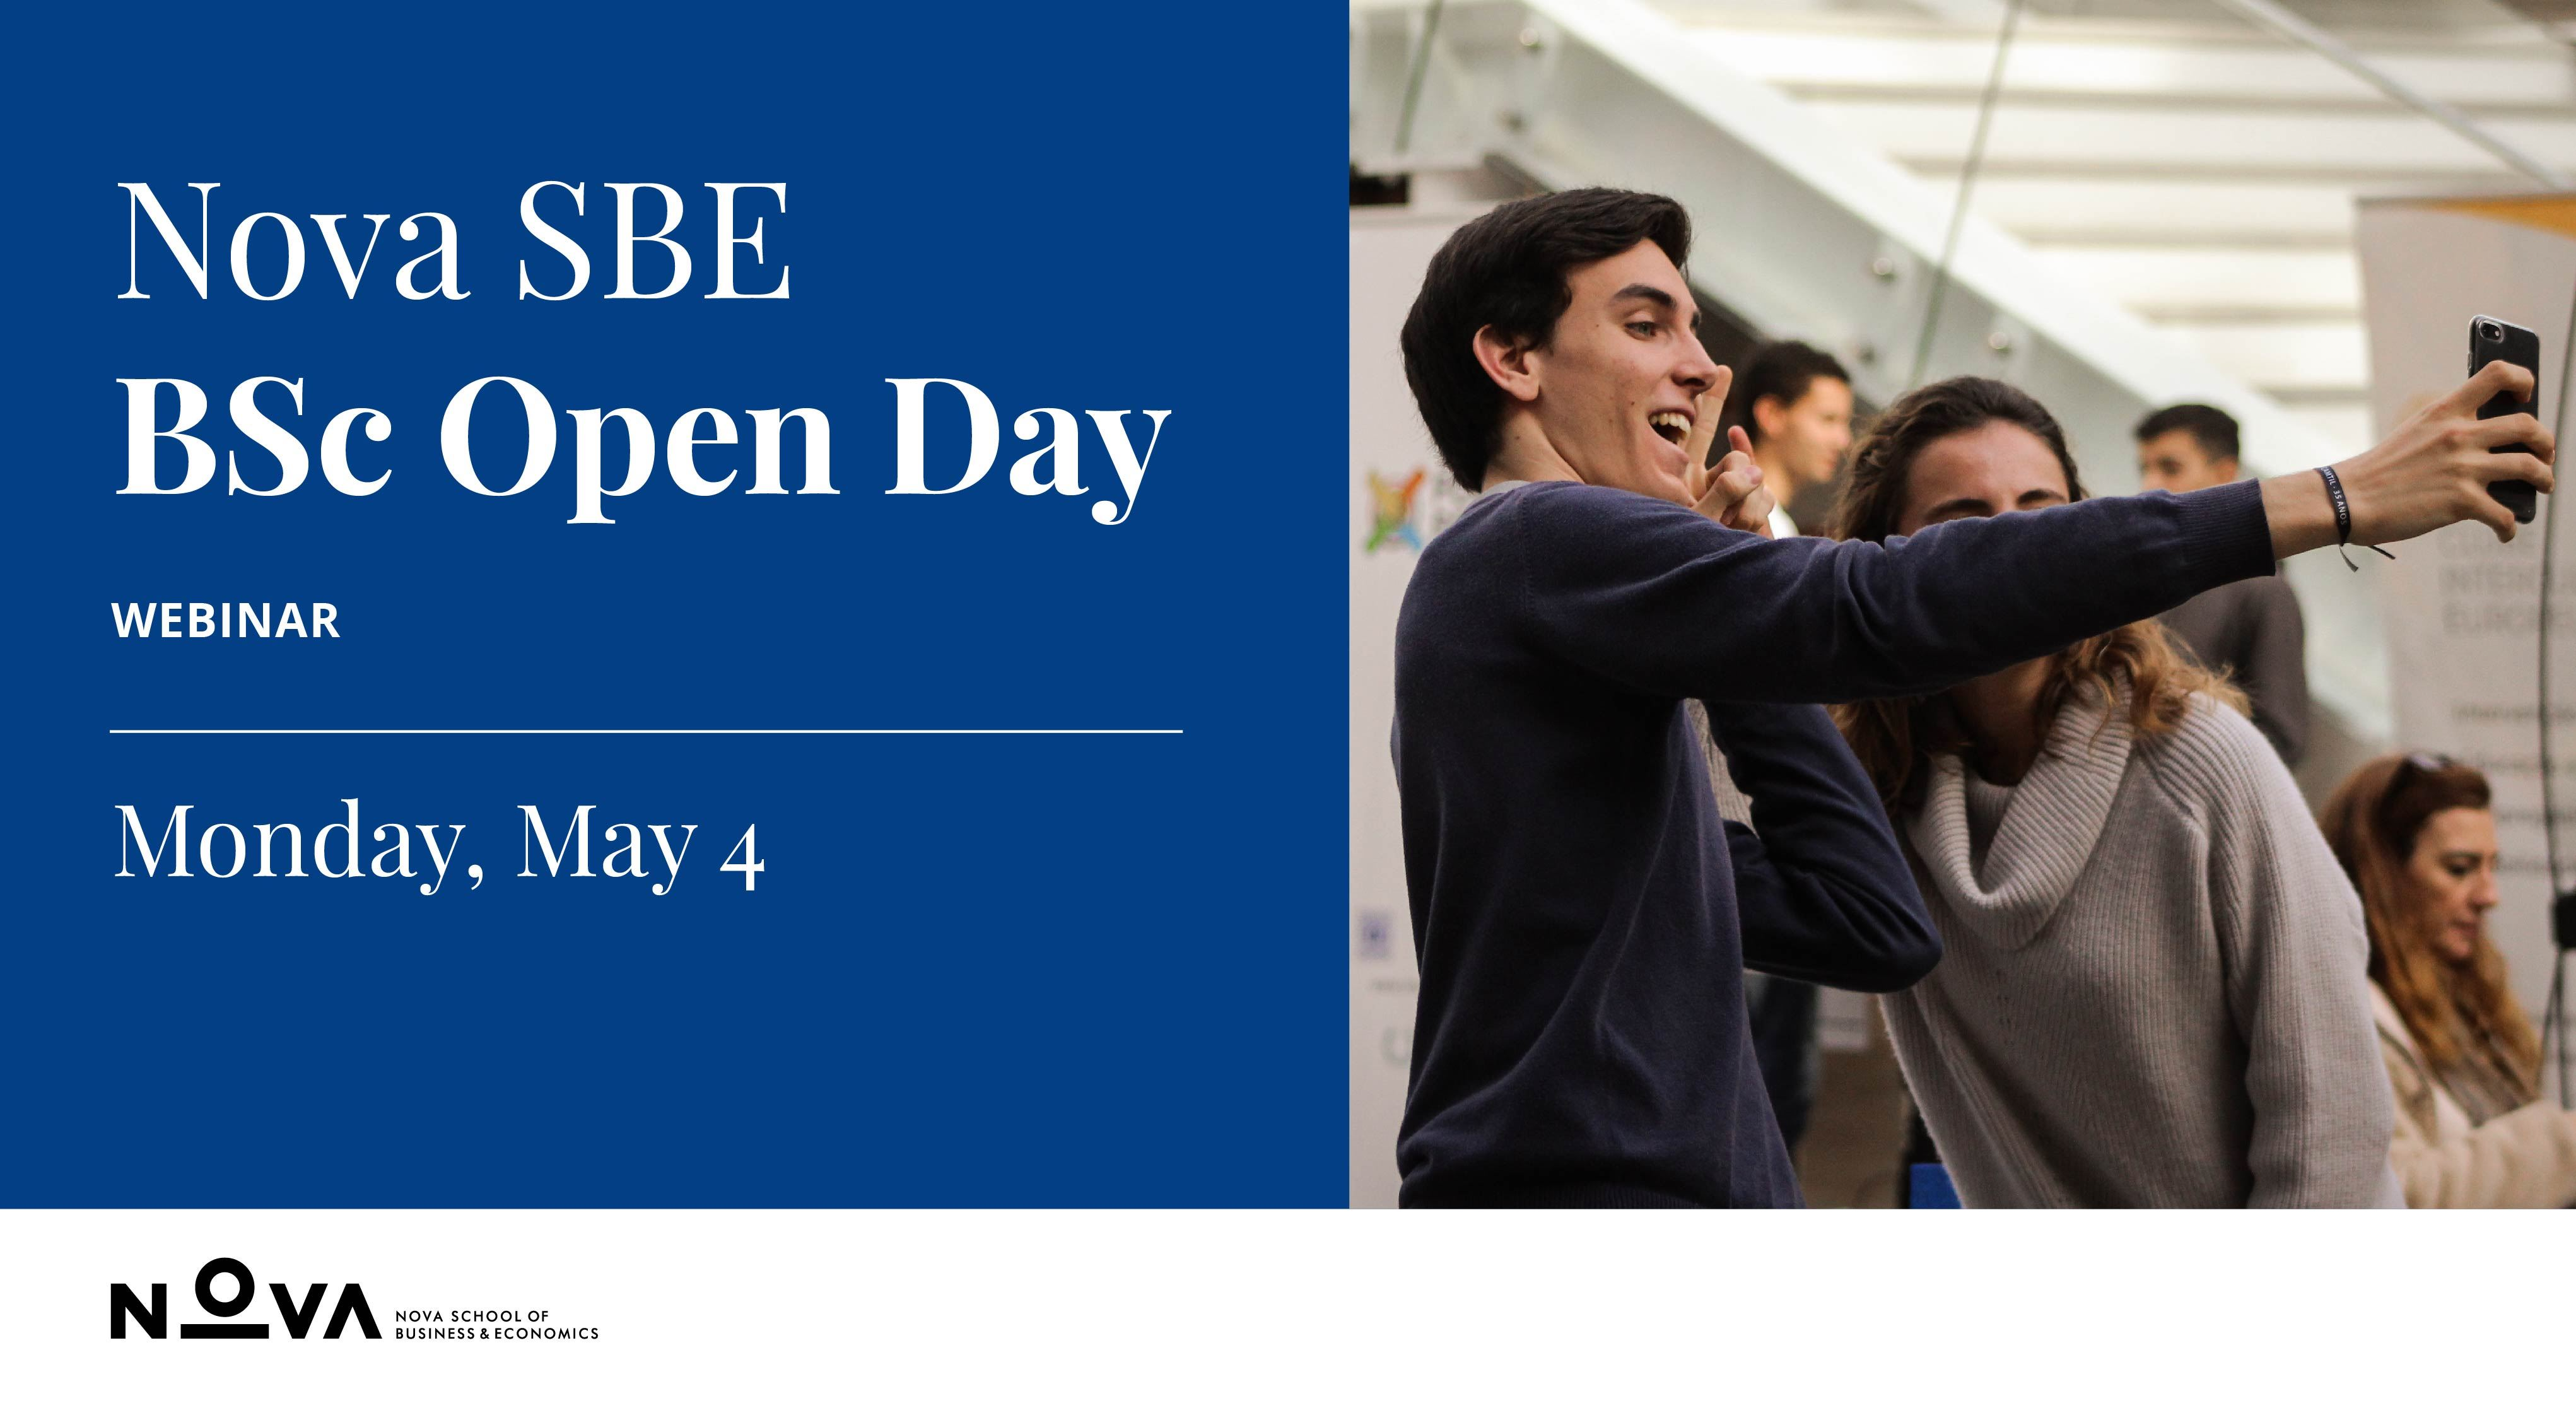 Nova SBE Bachelor's Open Day Webinar